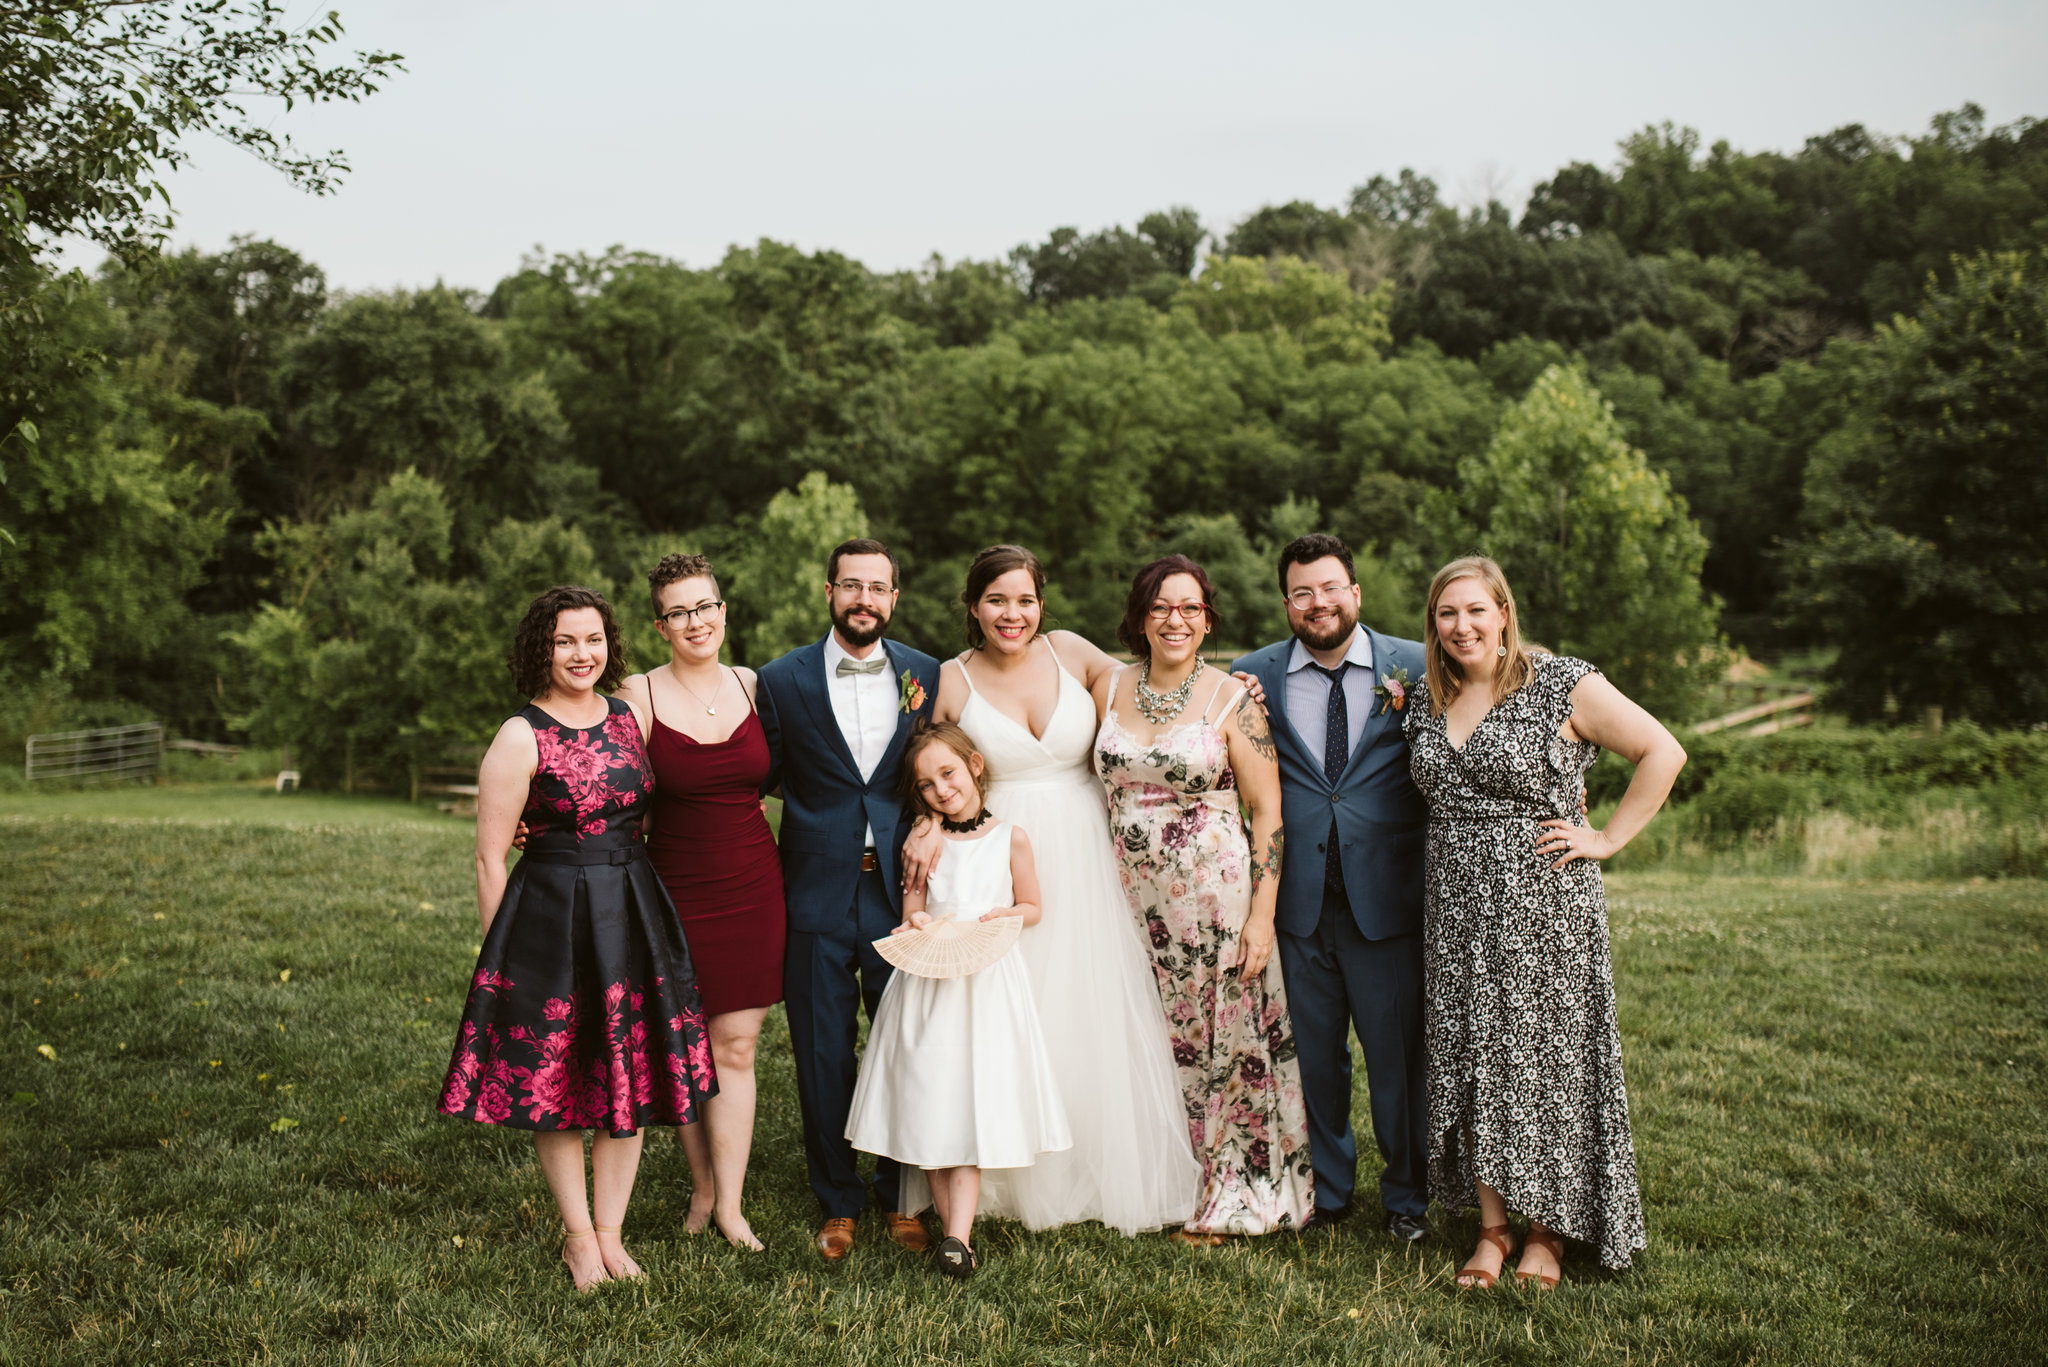 Rocklands Farm, Maryland, Intimate Wedding, Baltimore Wedding Photographer, Sungold Flower Co, Rustic, Romantic, Barn Wedding, Wedding Party After Ceremony